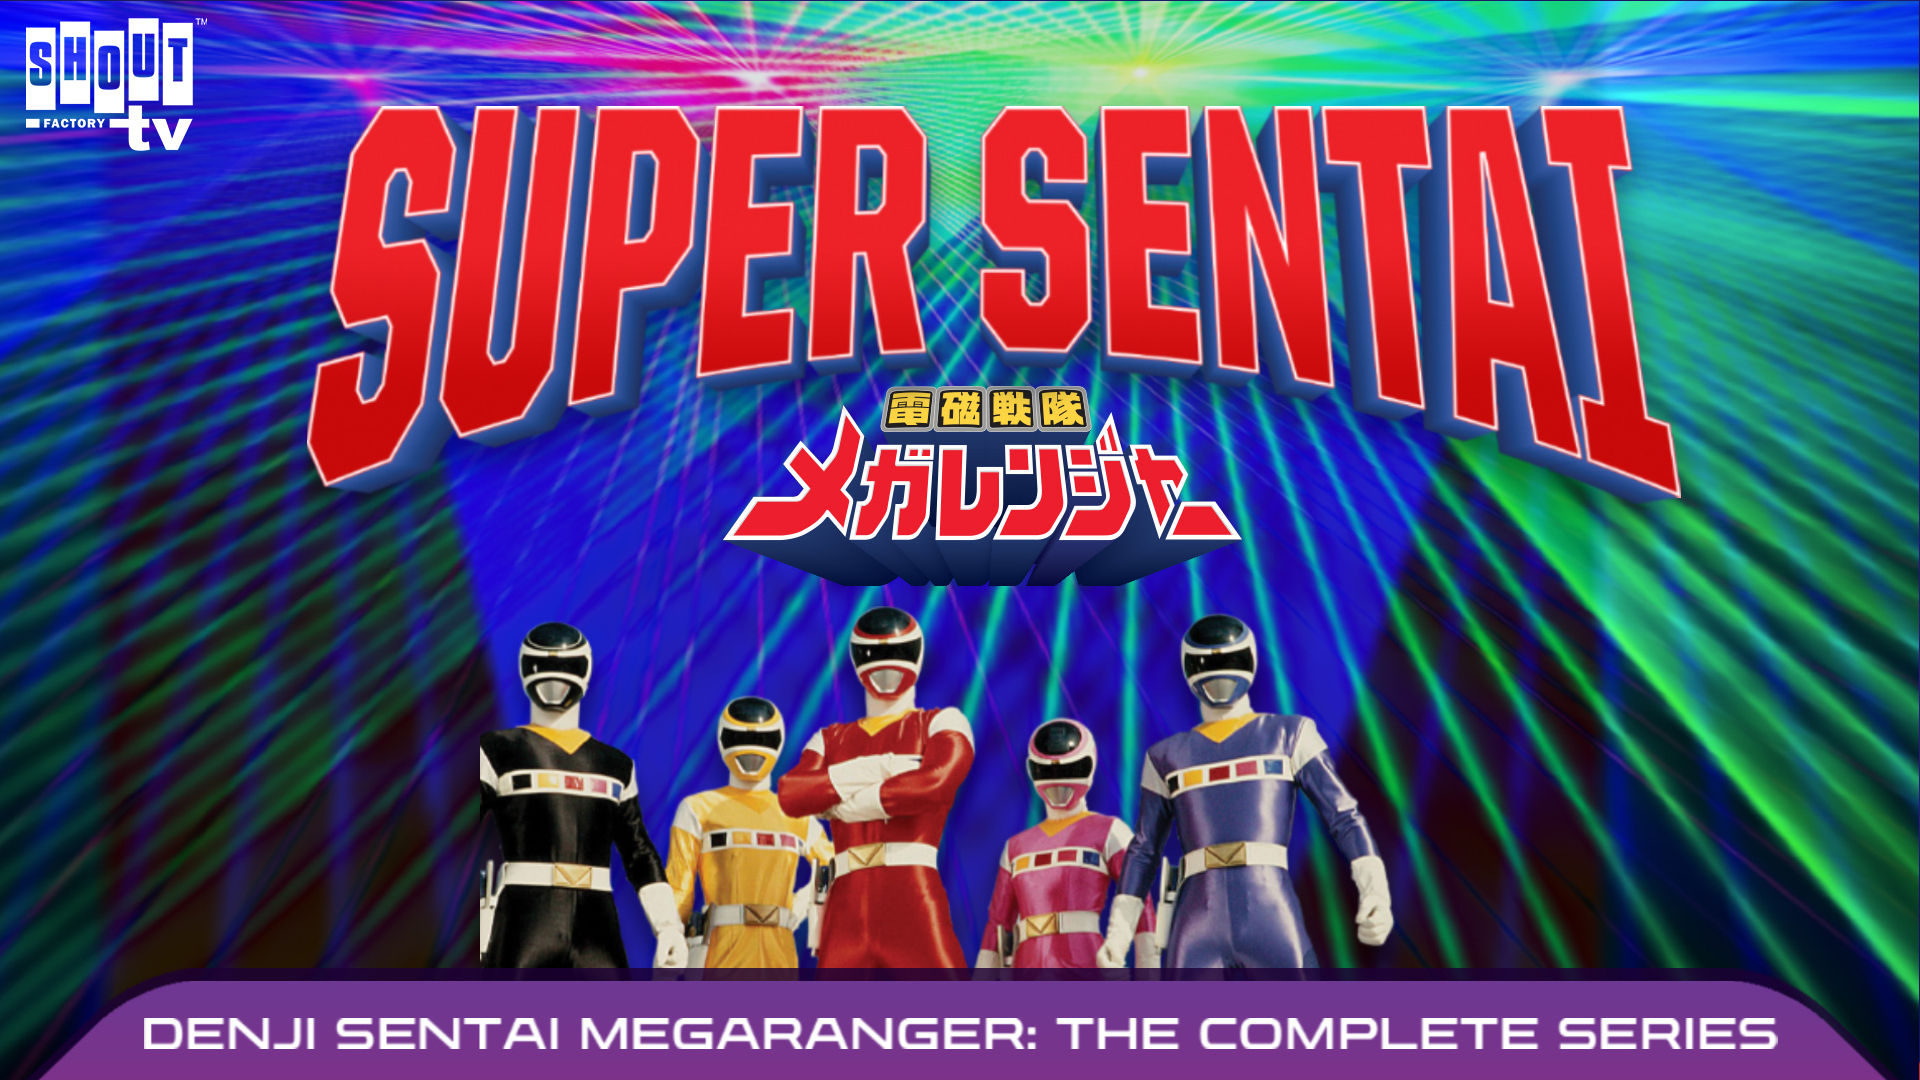 ShoutFactoryTV : Watch Super Sentai Megaranger Episode : Denji